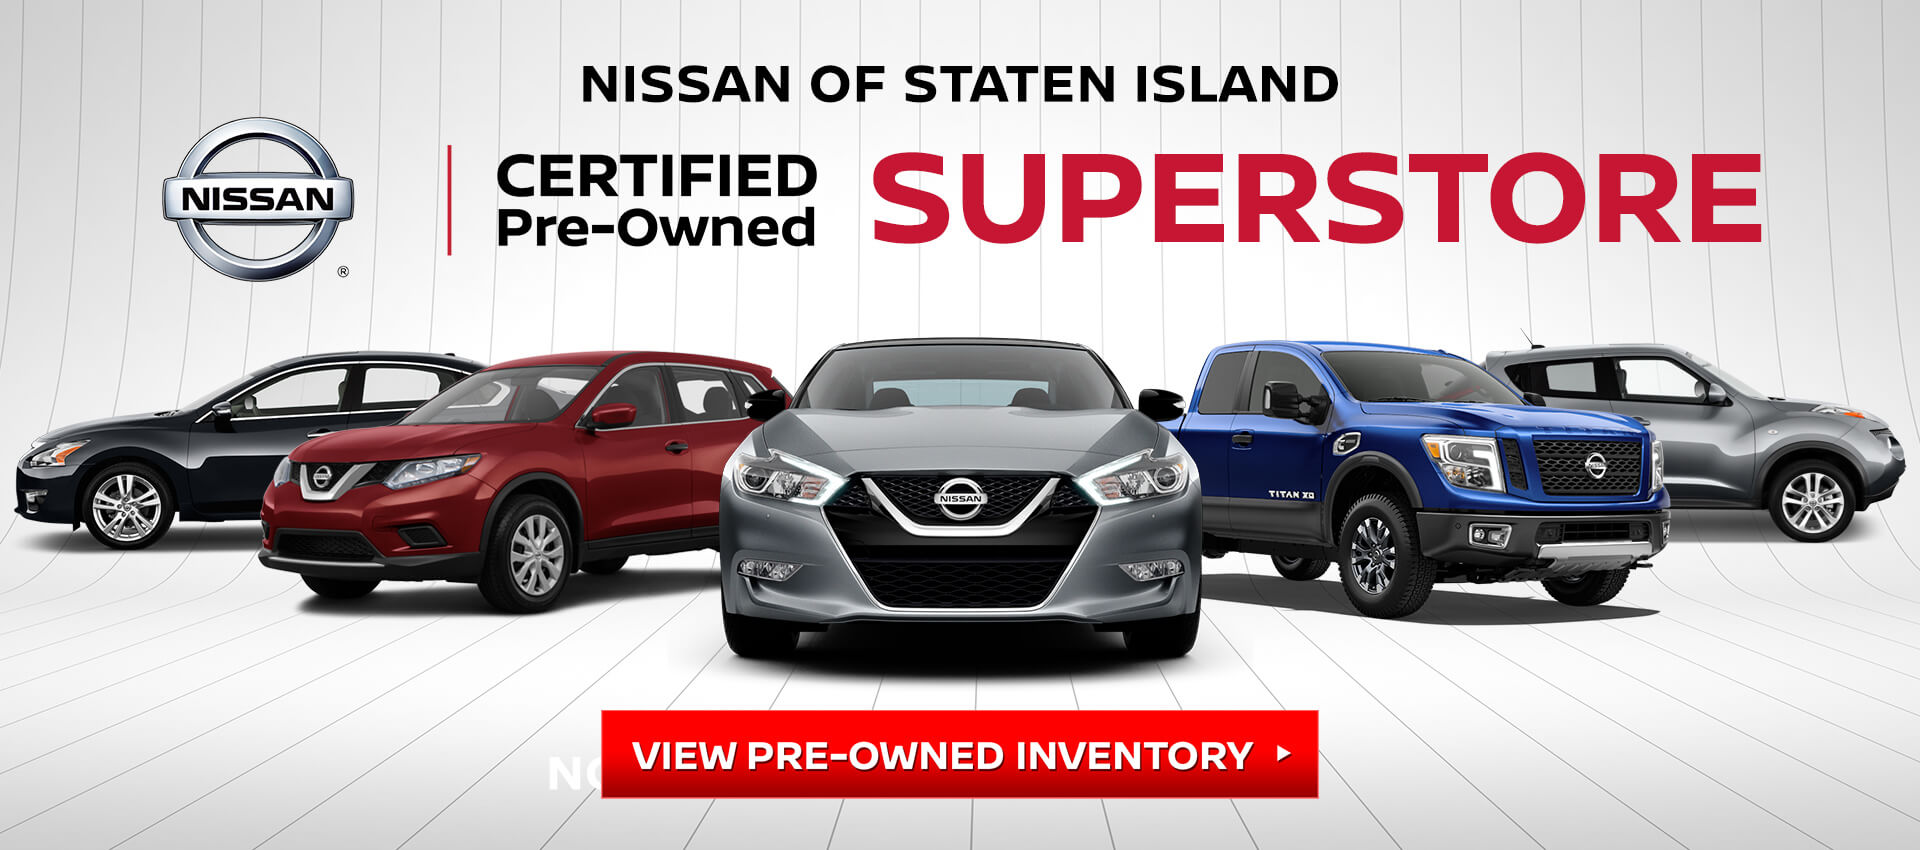 Nissan Dealers In Nj >> Nissan Dealer Staten Island New York Nissan Of Staten Island